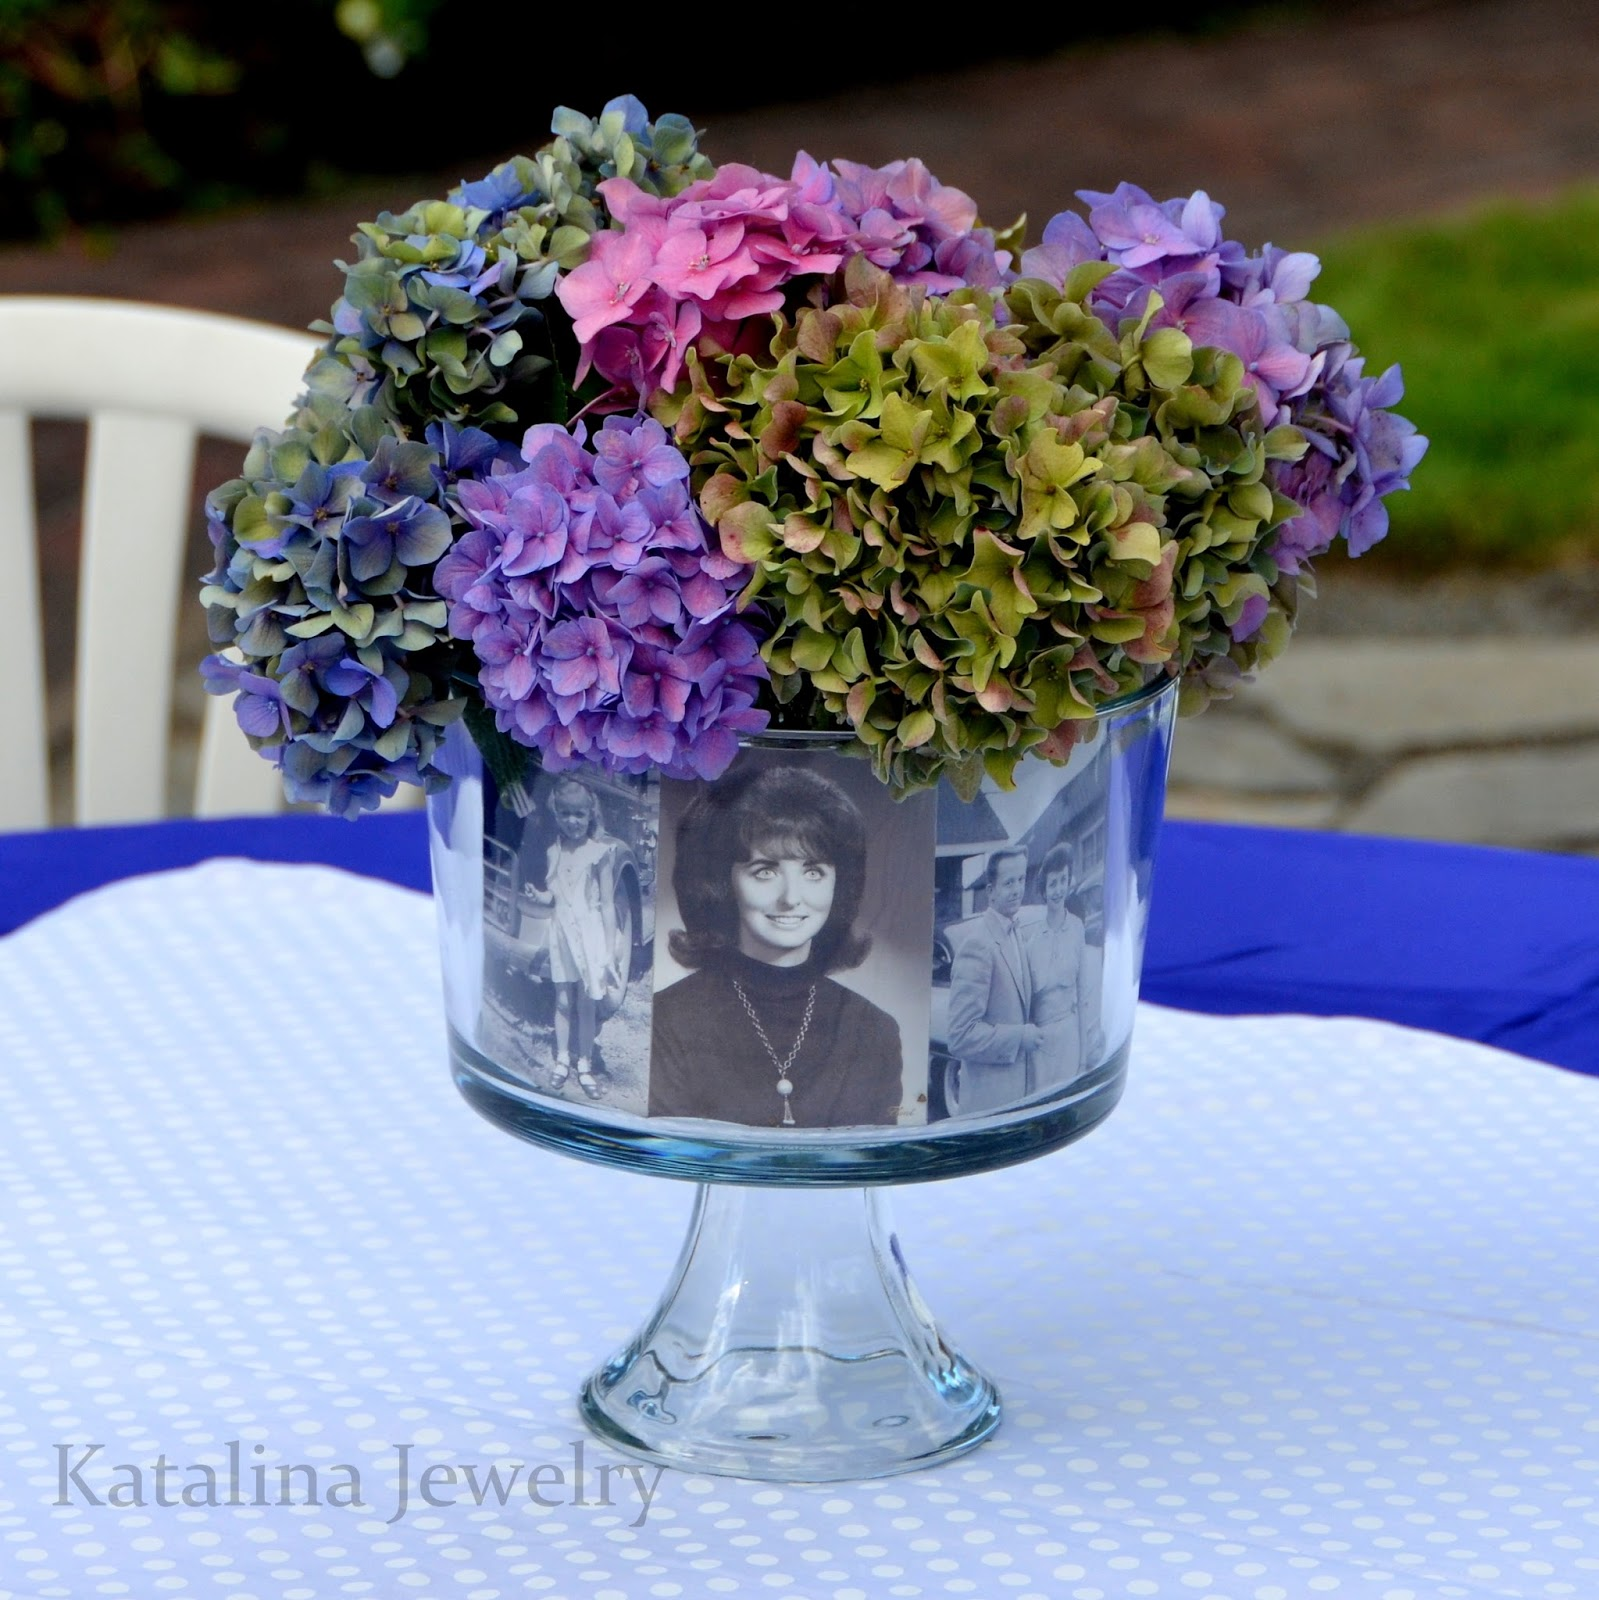 Katalina jewelry easy personalized photo foral centerpiece